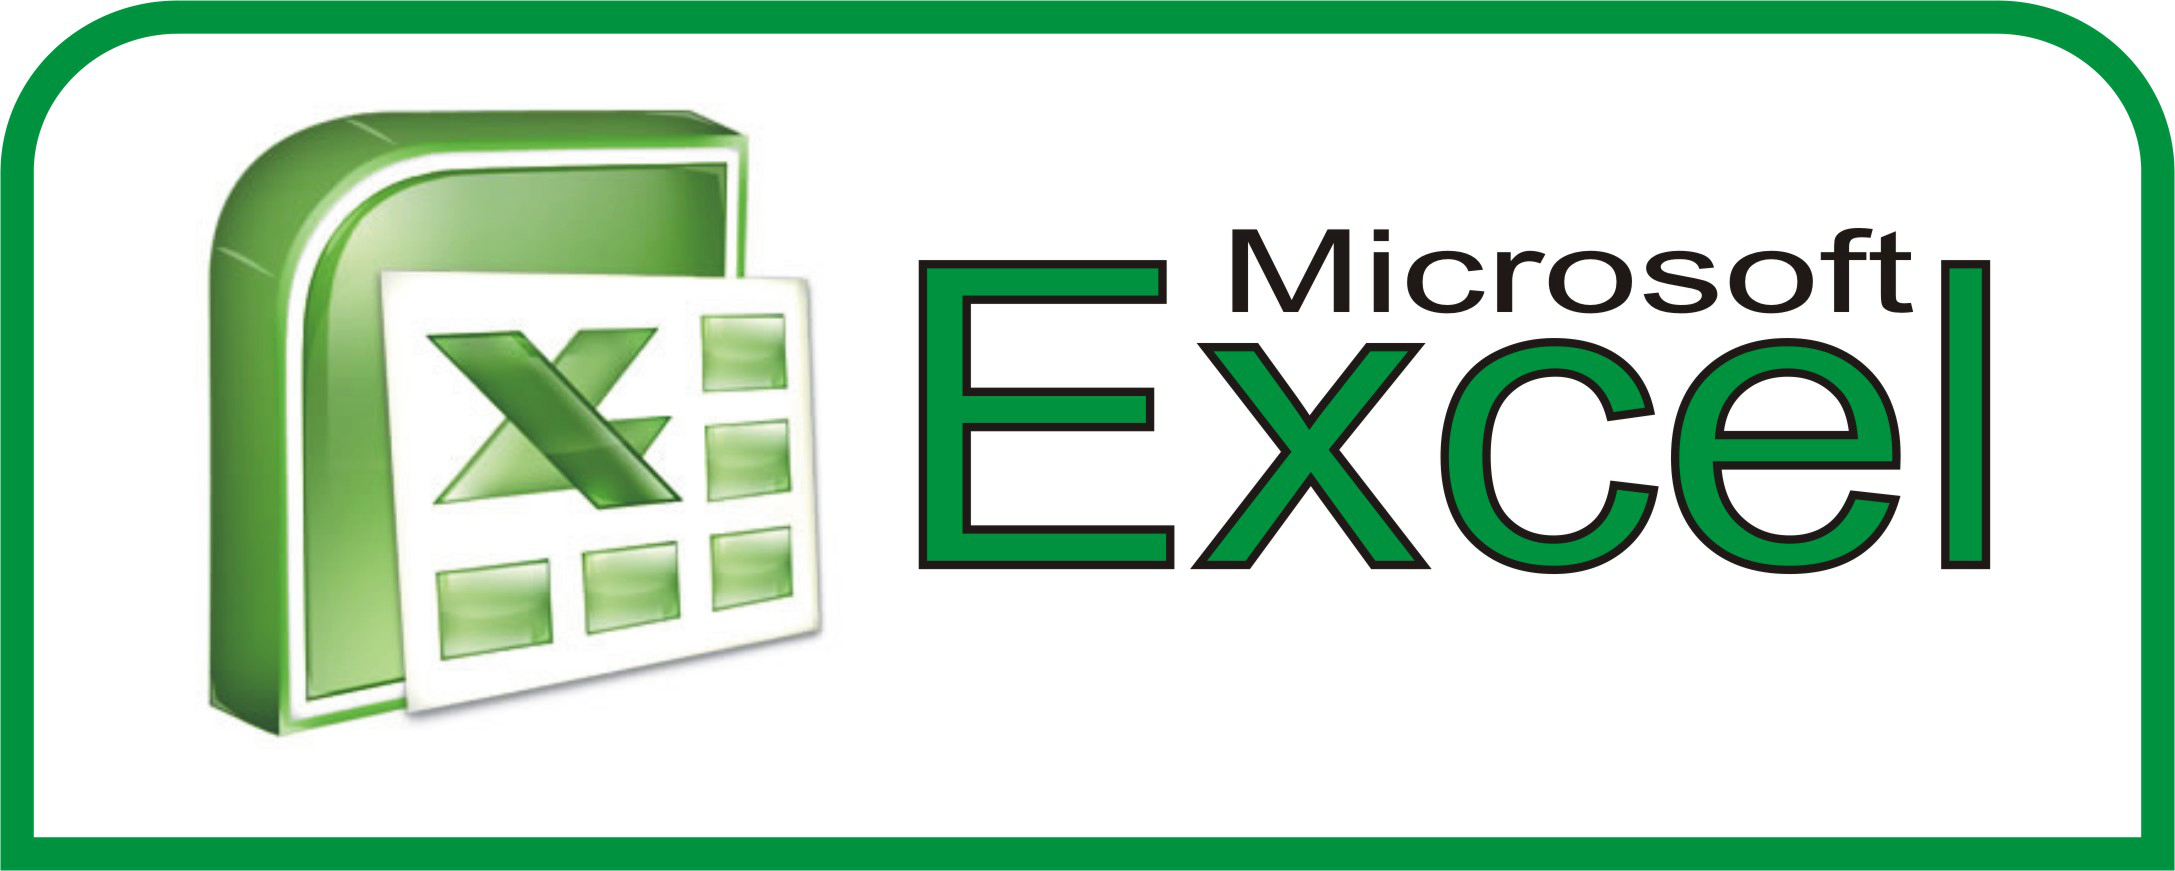 Ediblewildsus  Nice  Excel Shortcuts You Probably Didnt Know About  Techdissected With Remarkable Payback Period Excel Besides Cell Style Excel Furthermore V Lookup Excel With Awesome Excel Check Register Also Excel Home Health In Addition Meaning Of Excel And Read Only Excel As Well As Microsoft Excel Trial Additionally Sparklines Excel  From Techdissectedcom With Ediblewildsus  Remarkable  Excel Shortcuts You Probably Didnt Know About  Techdissected With Awesome Payback Period Excel Besides Cell Style Excel Furthermore V Lookup Excel And Nice Excel Check Register Also Excel Home Health In Addition Meaning Of Excel From Techdissectedcom